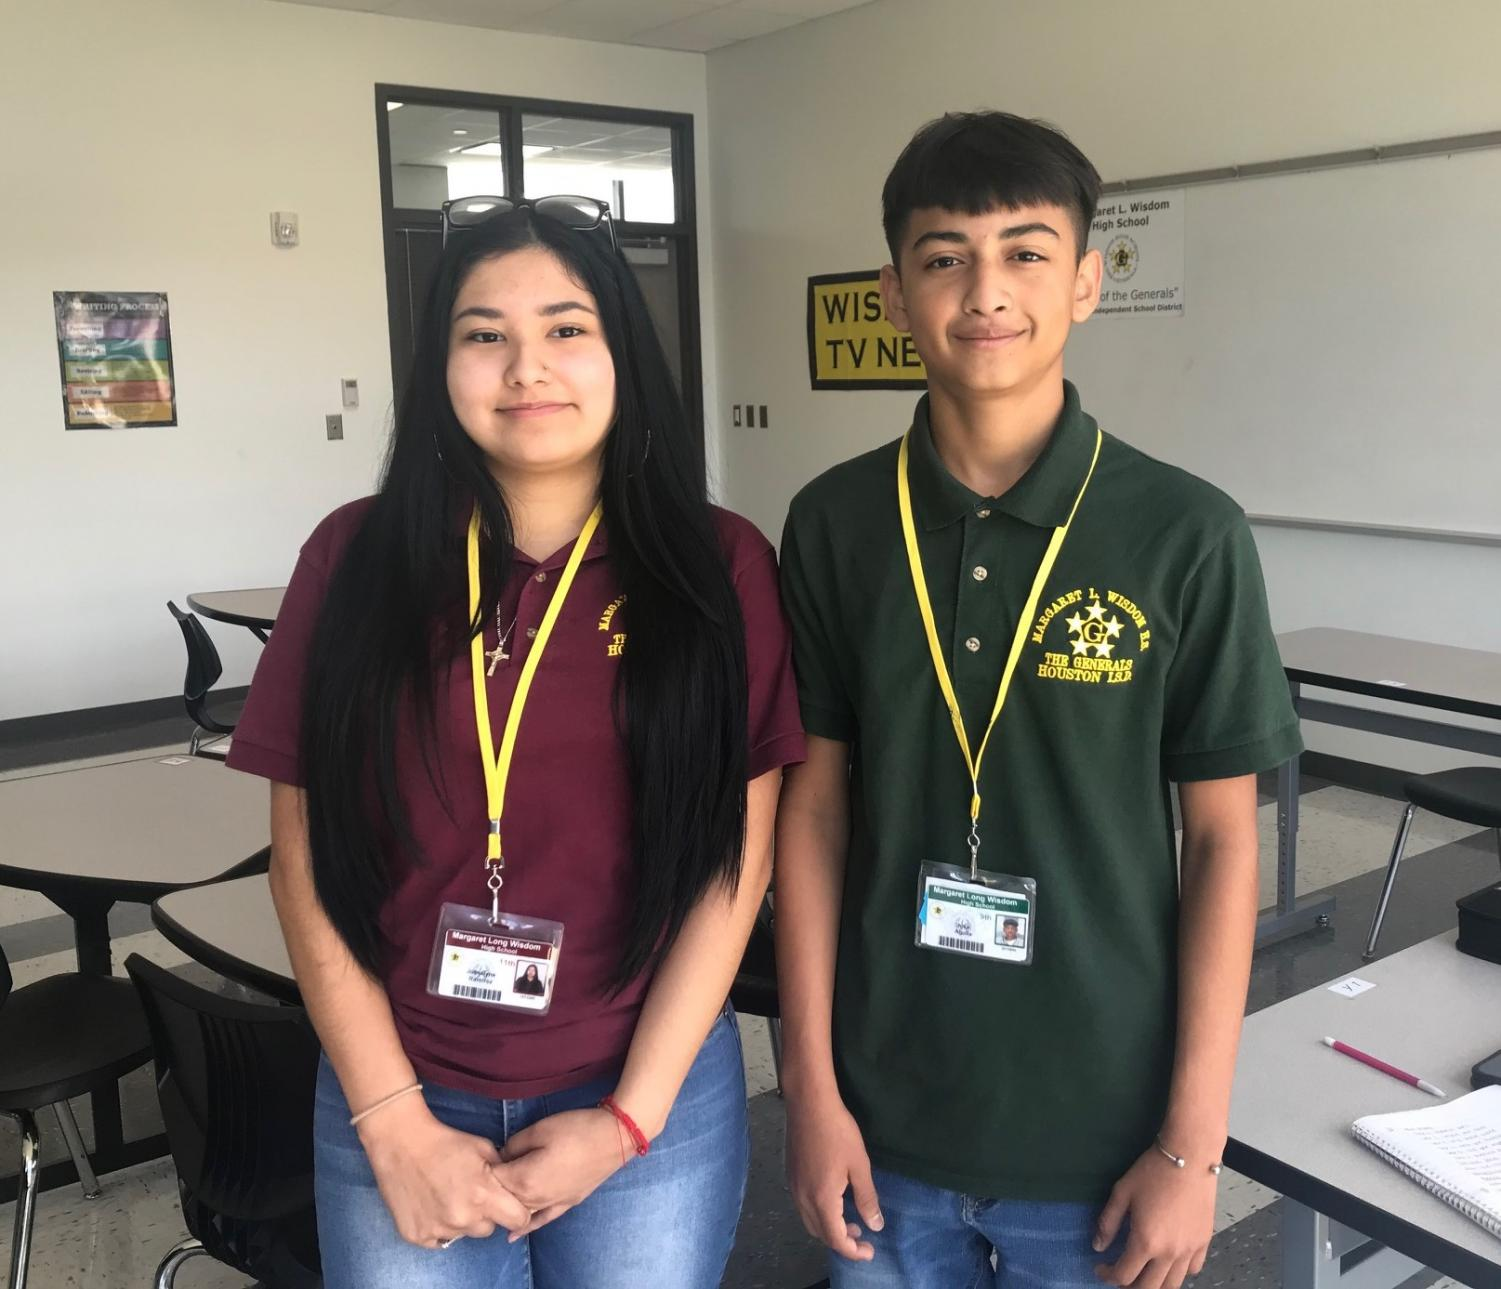 Two Wisdom students are shown with the proper dress code and also wearing their student ID's.